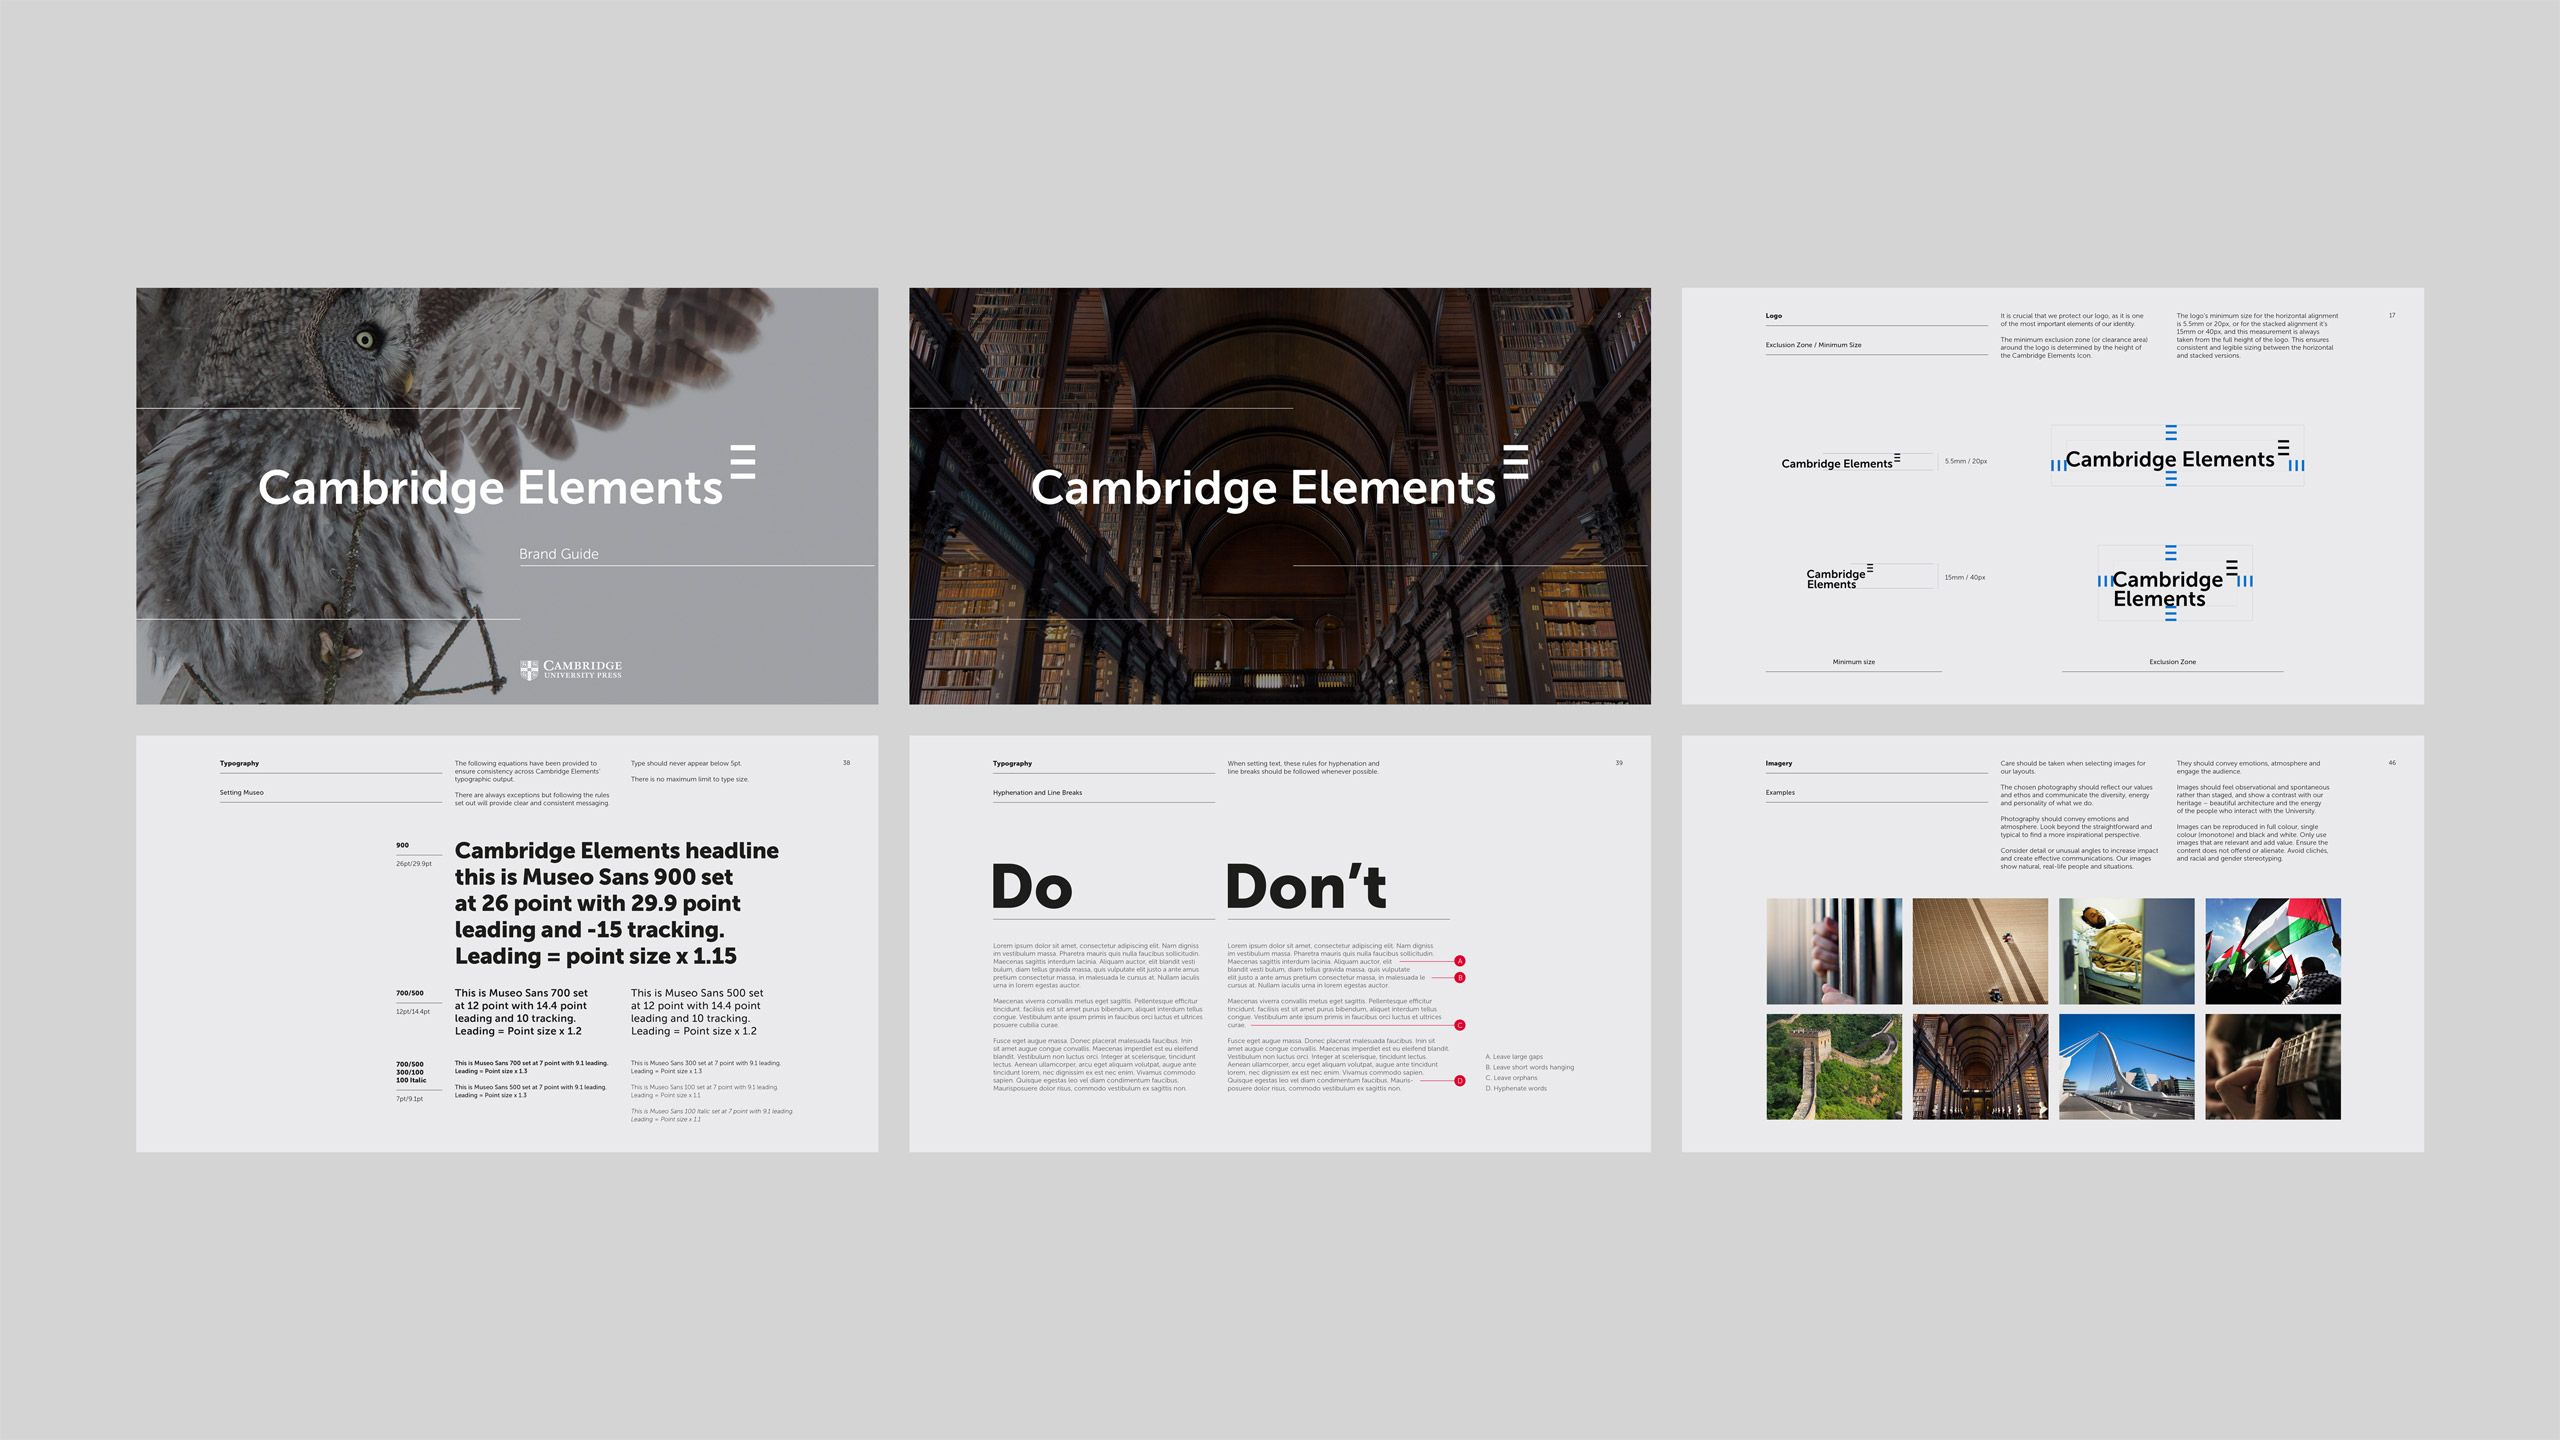 Cambridge Elements Brand Strategy And Design Branding Design Brand Strategy Design Brand Guidelines Design